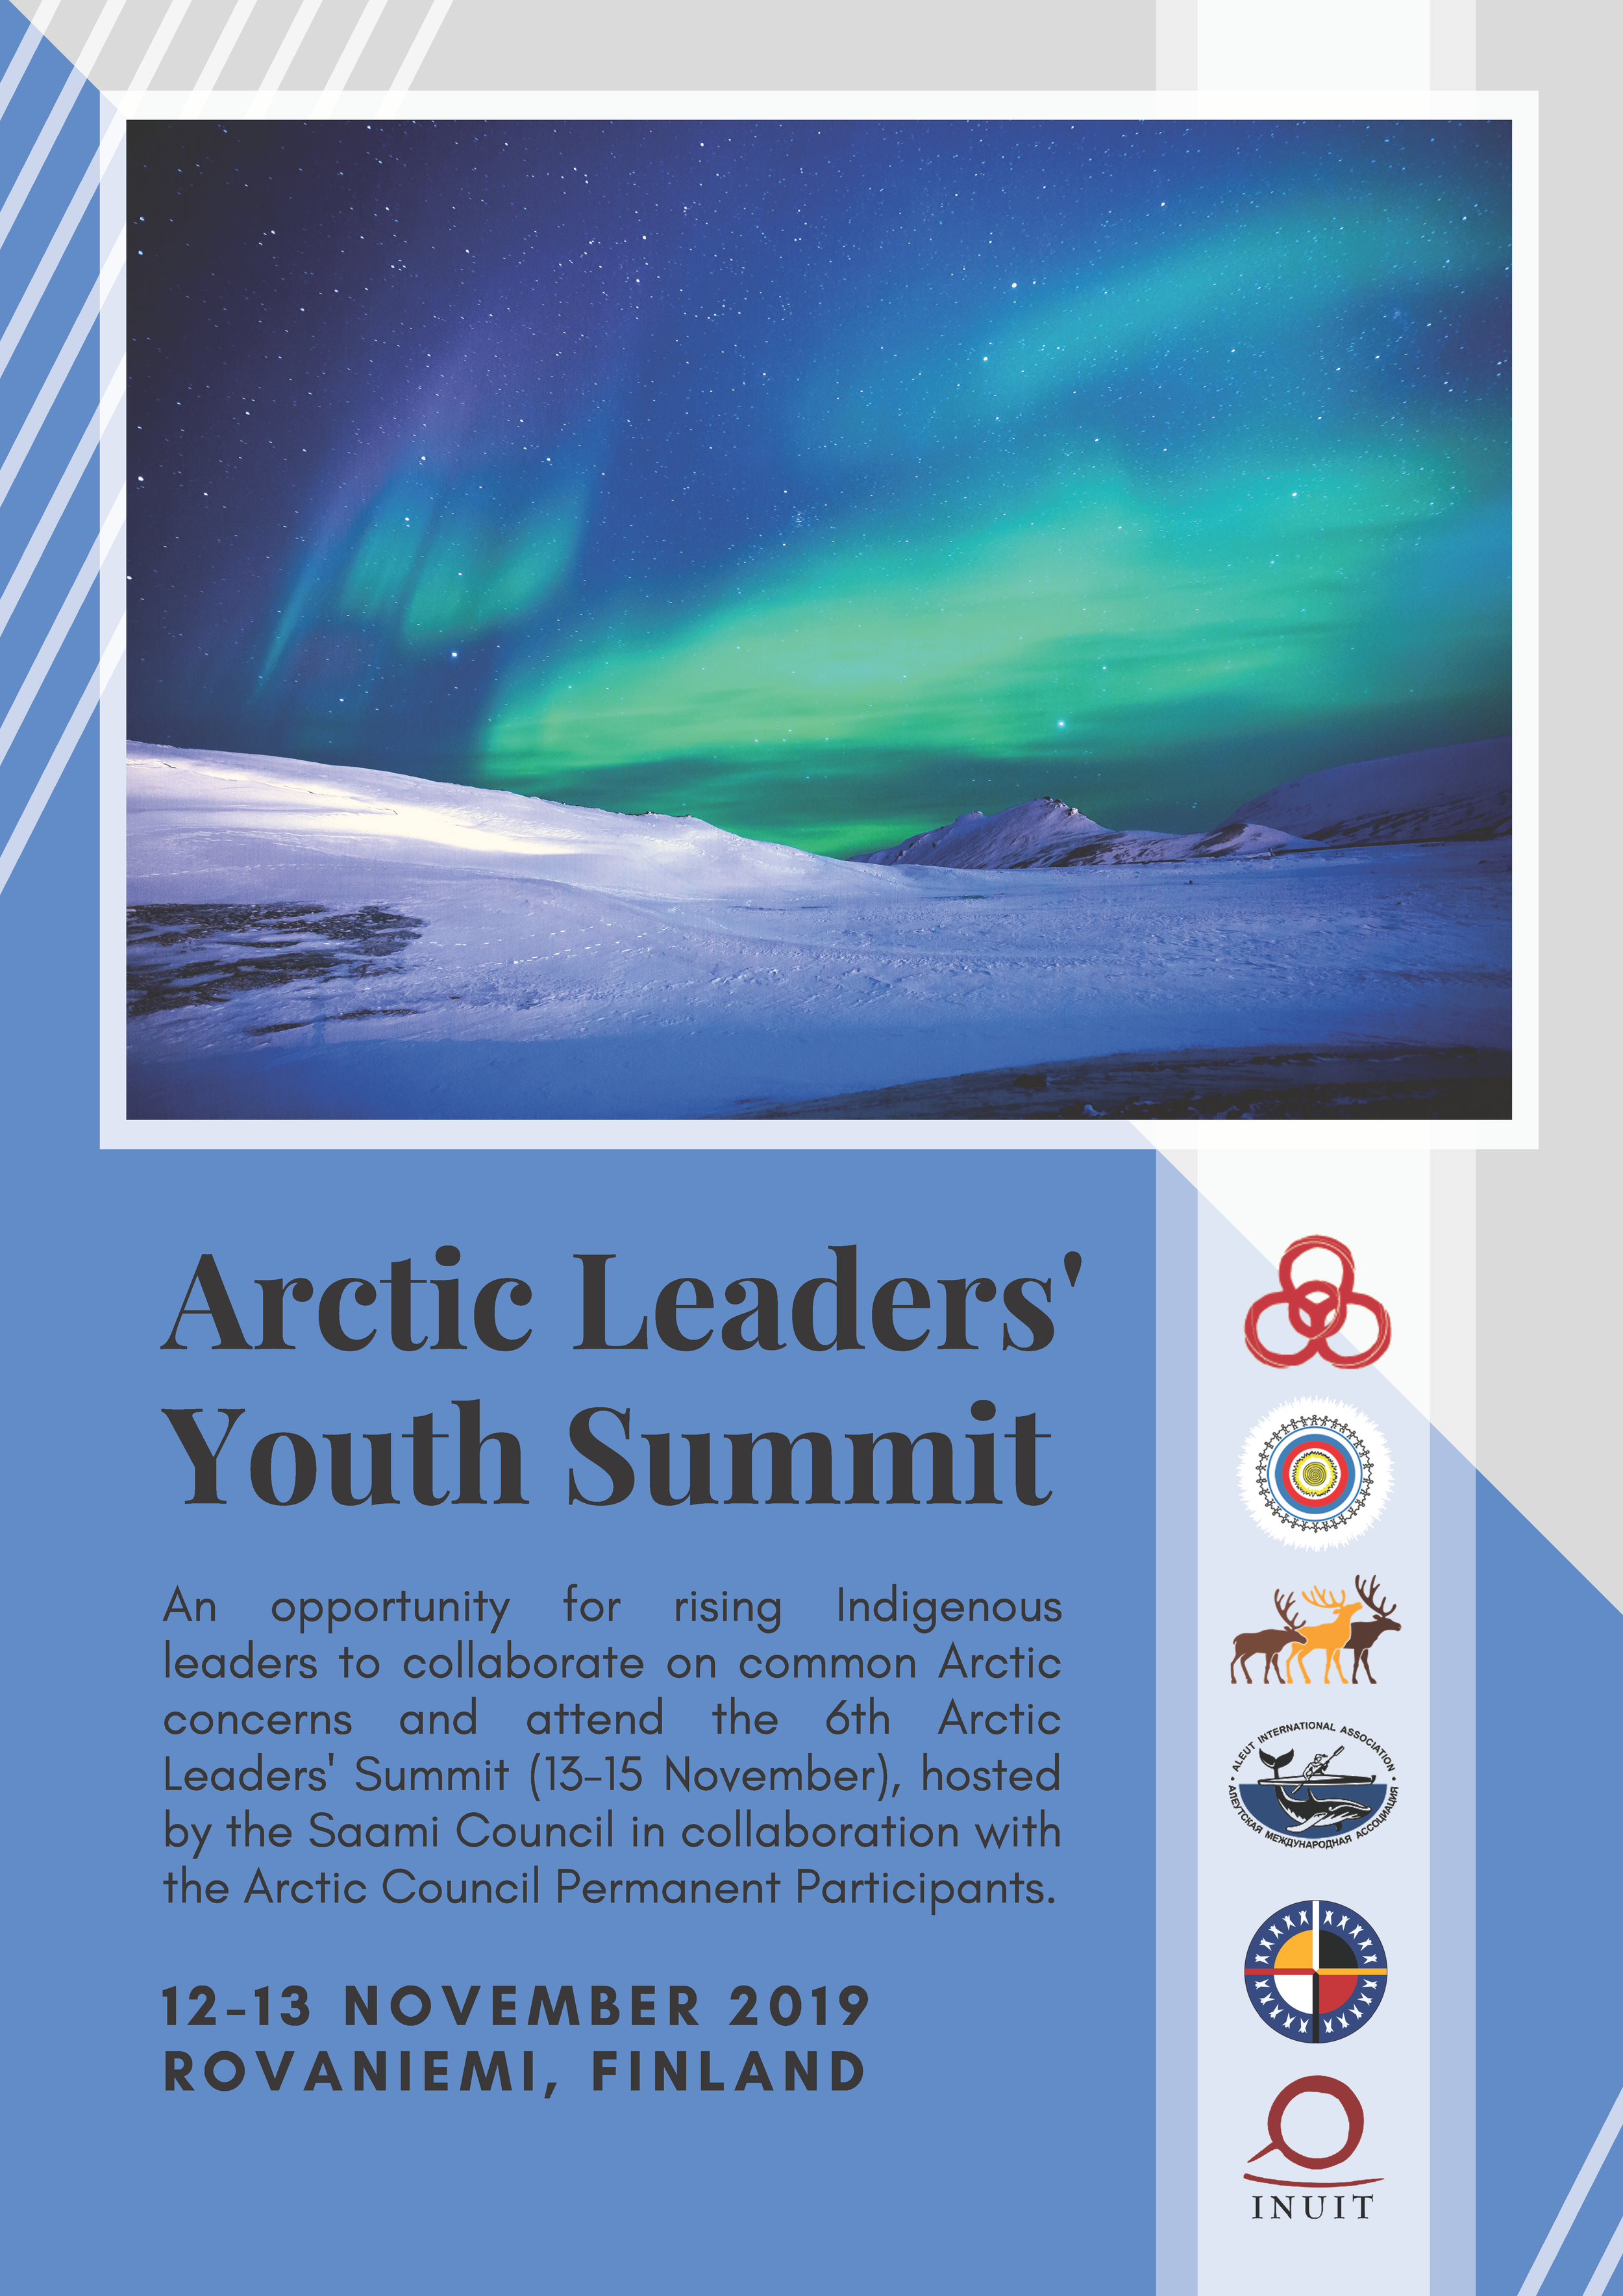 Arctic Leaders' Youth Summit - The Youth Summit is a new, complementary addition organized to provide a dedicated summit for Indigenous youth and promote youth engagement in ALS6. It will be an excellent opportunity for rising Indigenous leaders from across the circumpolar Arctic to learn about each other's homelands, discuss issues of joint concern, and build their networks and skills in international cooperation.Primarily developed by Saami youth organizations, the program will allow youth nominees to share dreams for their common Arctic future, prepare for ALS6 and compose a declaration that will be presented during ALS6.